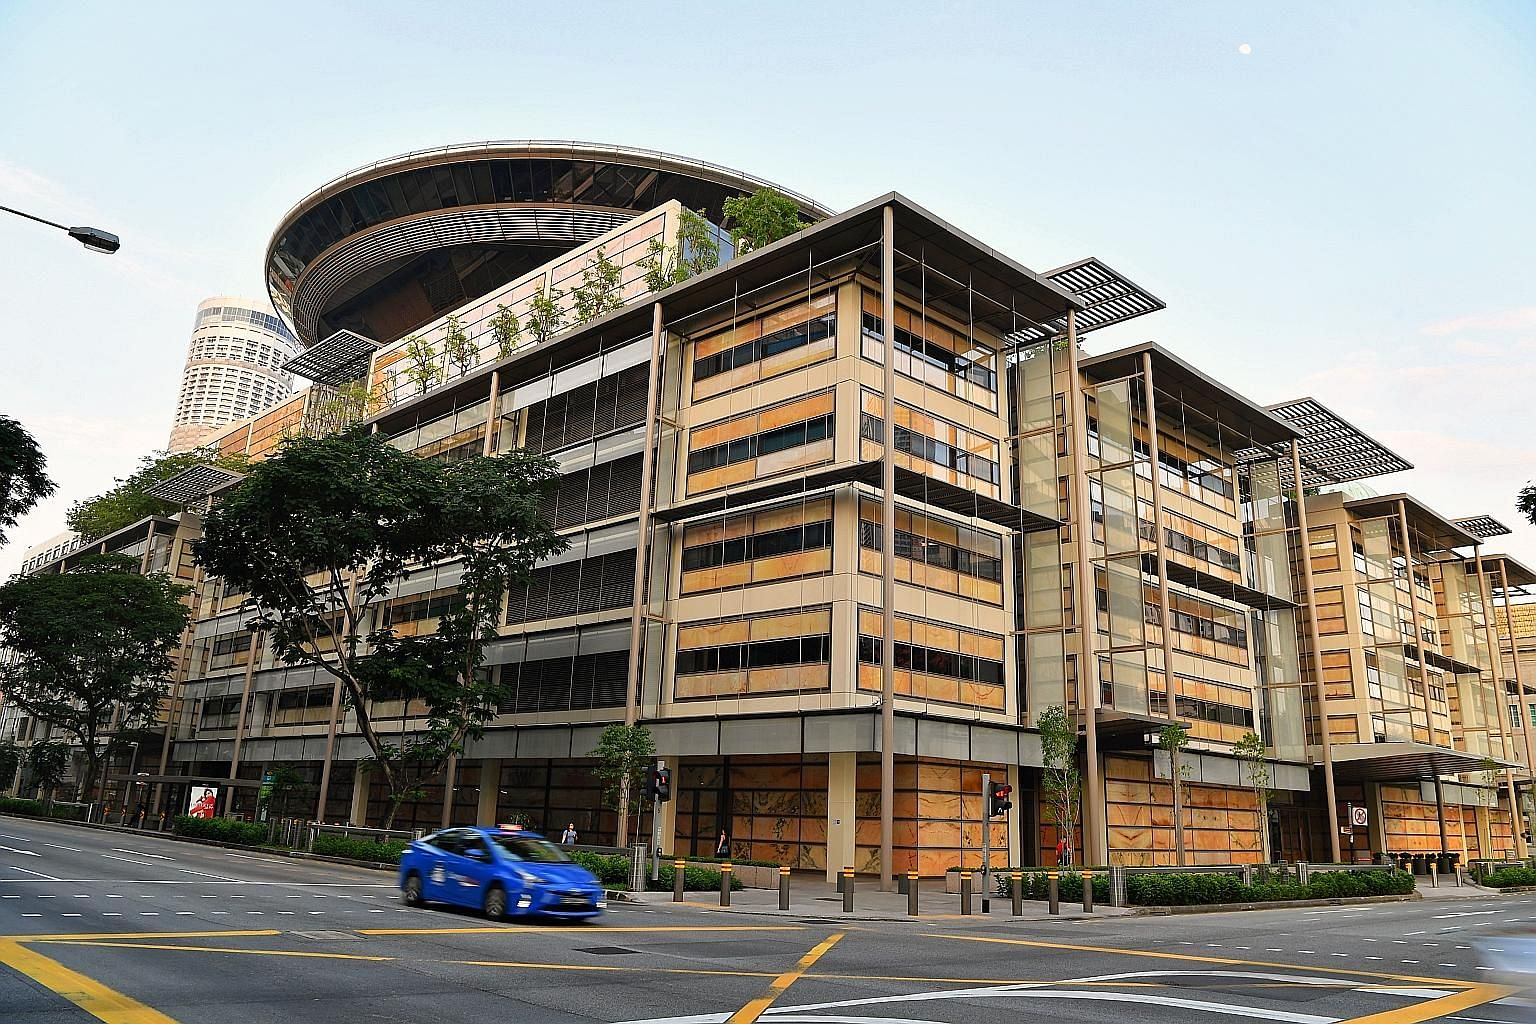 The postmodern Supreme Court building is emblematic of Singapore's emergence as a regional dispute resolution and commercial legal business hub. A modernised legal industry is a necessary element of Singapore's economic and digital transformation and